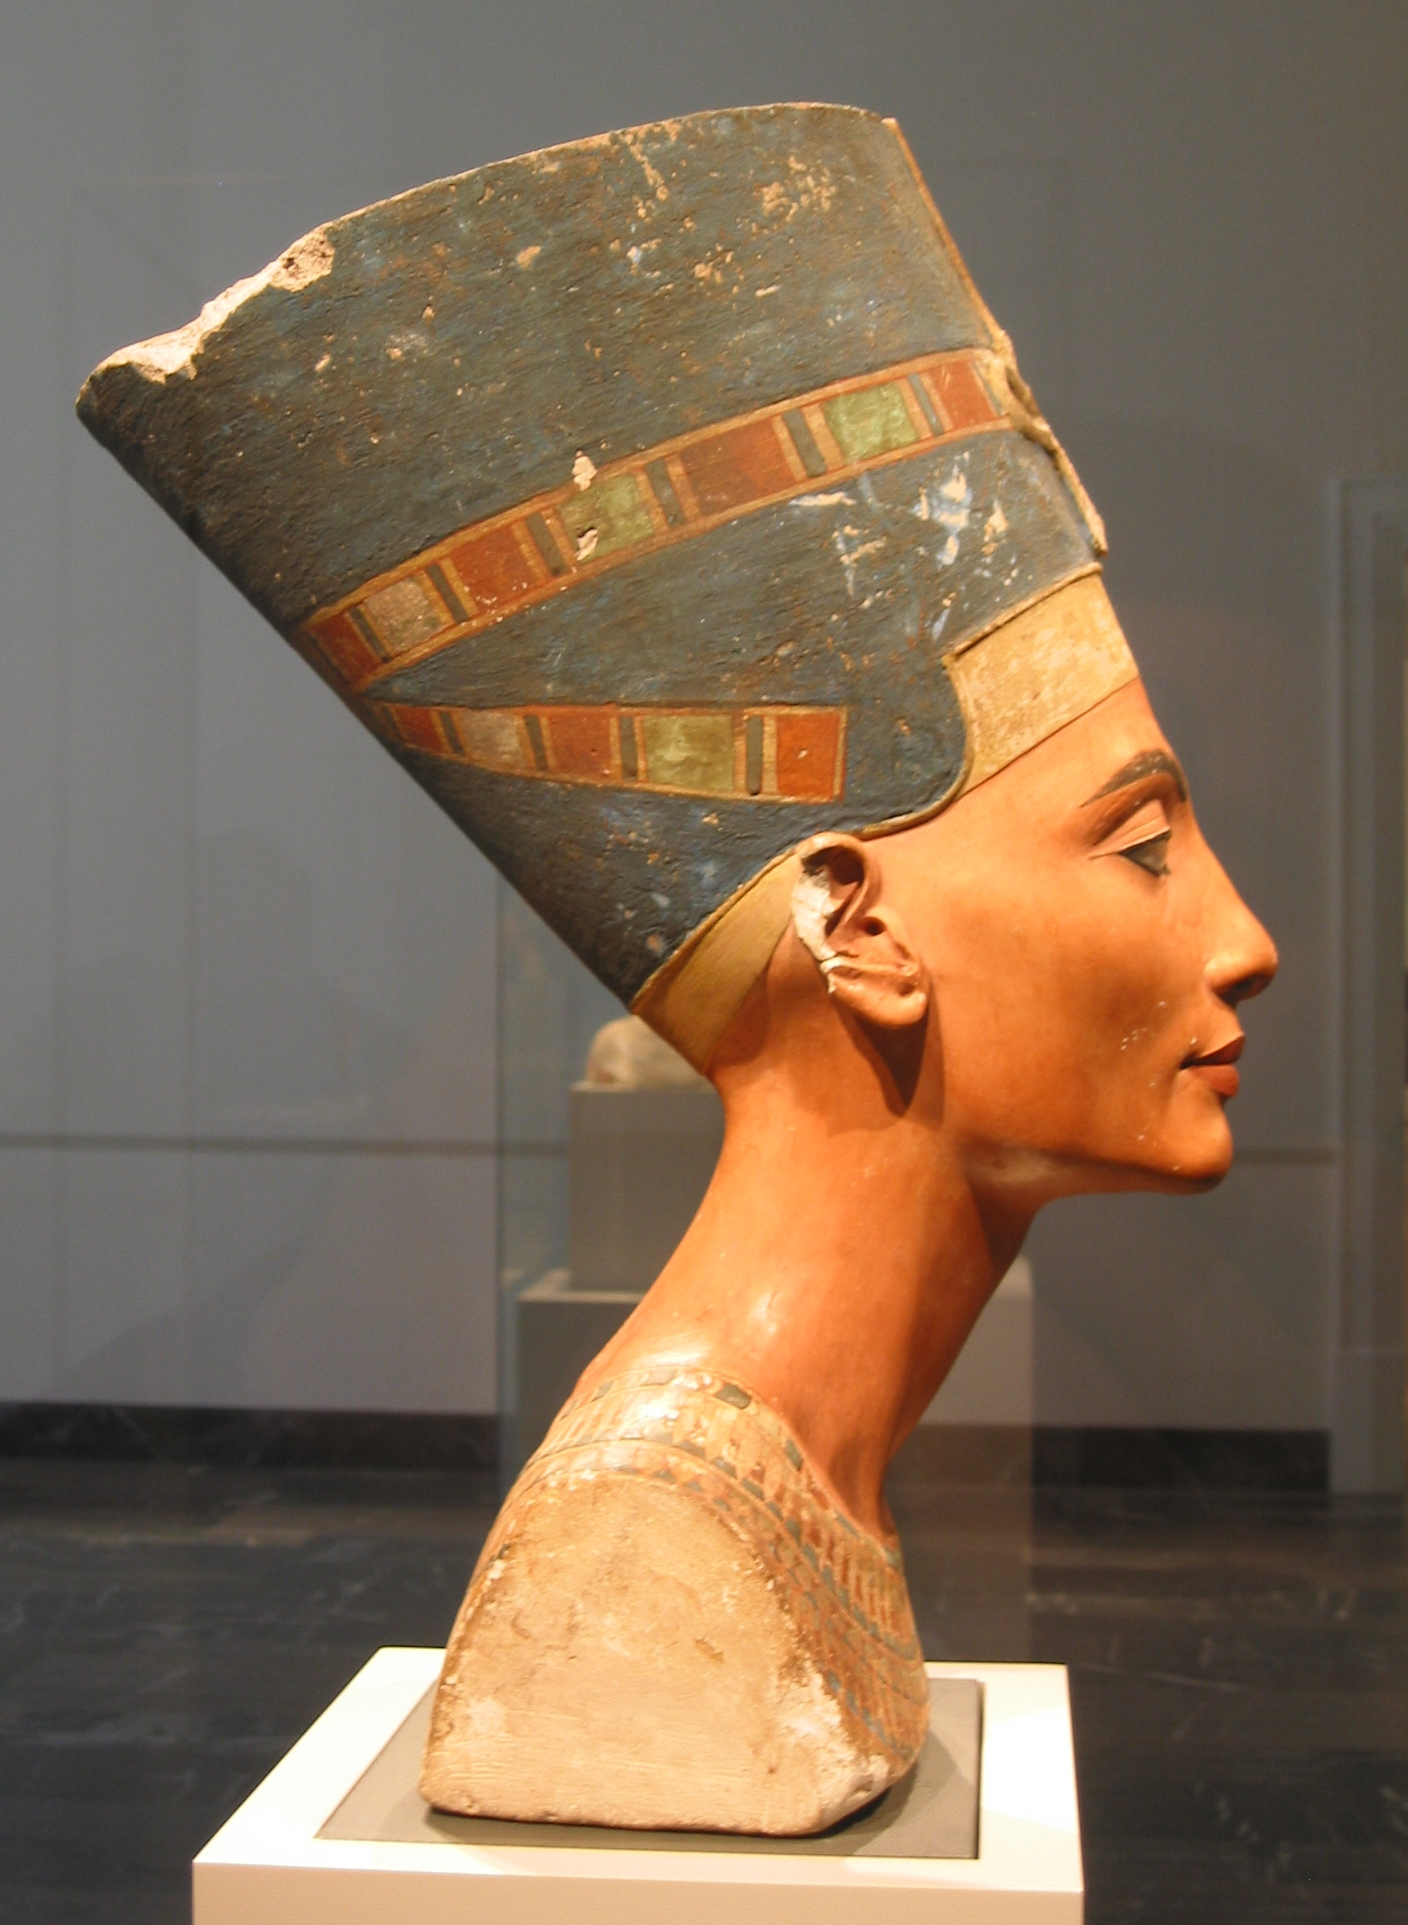 Right profile of the Nefertiti bust in the Neues Museum, Berlin. Photo taken on December 28, 2005.